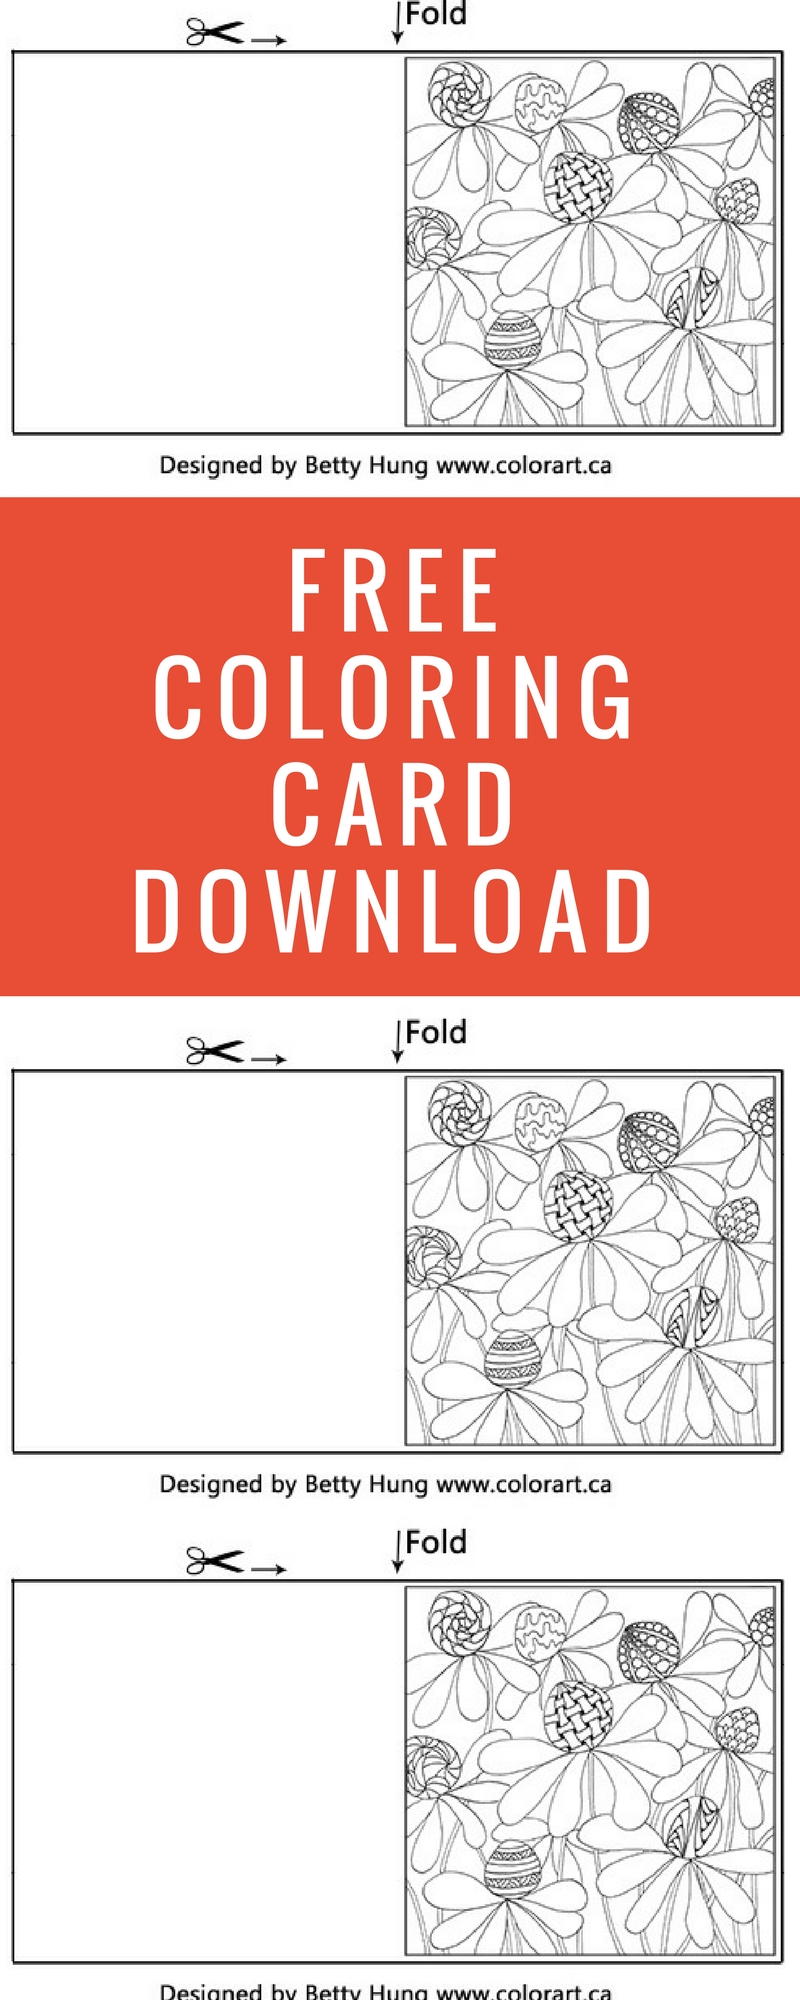 FREE Coloring Card | Designed by Betty Hung | Adult Coloring | Card Making | Creative Scrapbooker Magazine